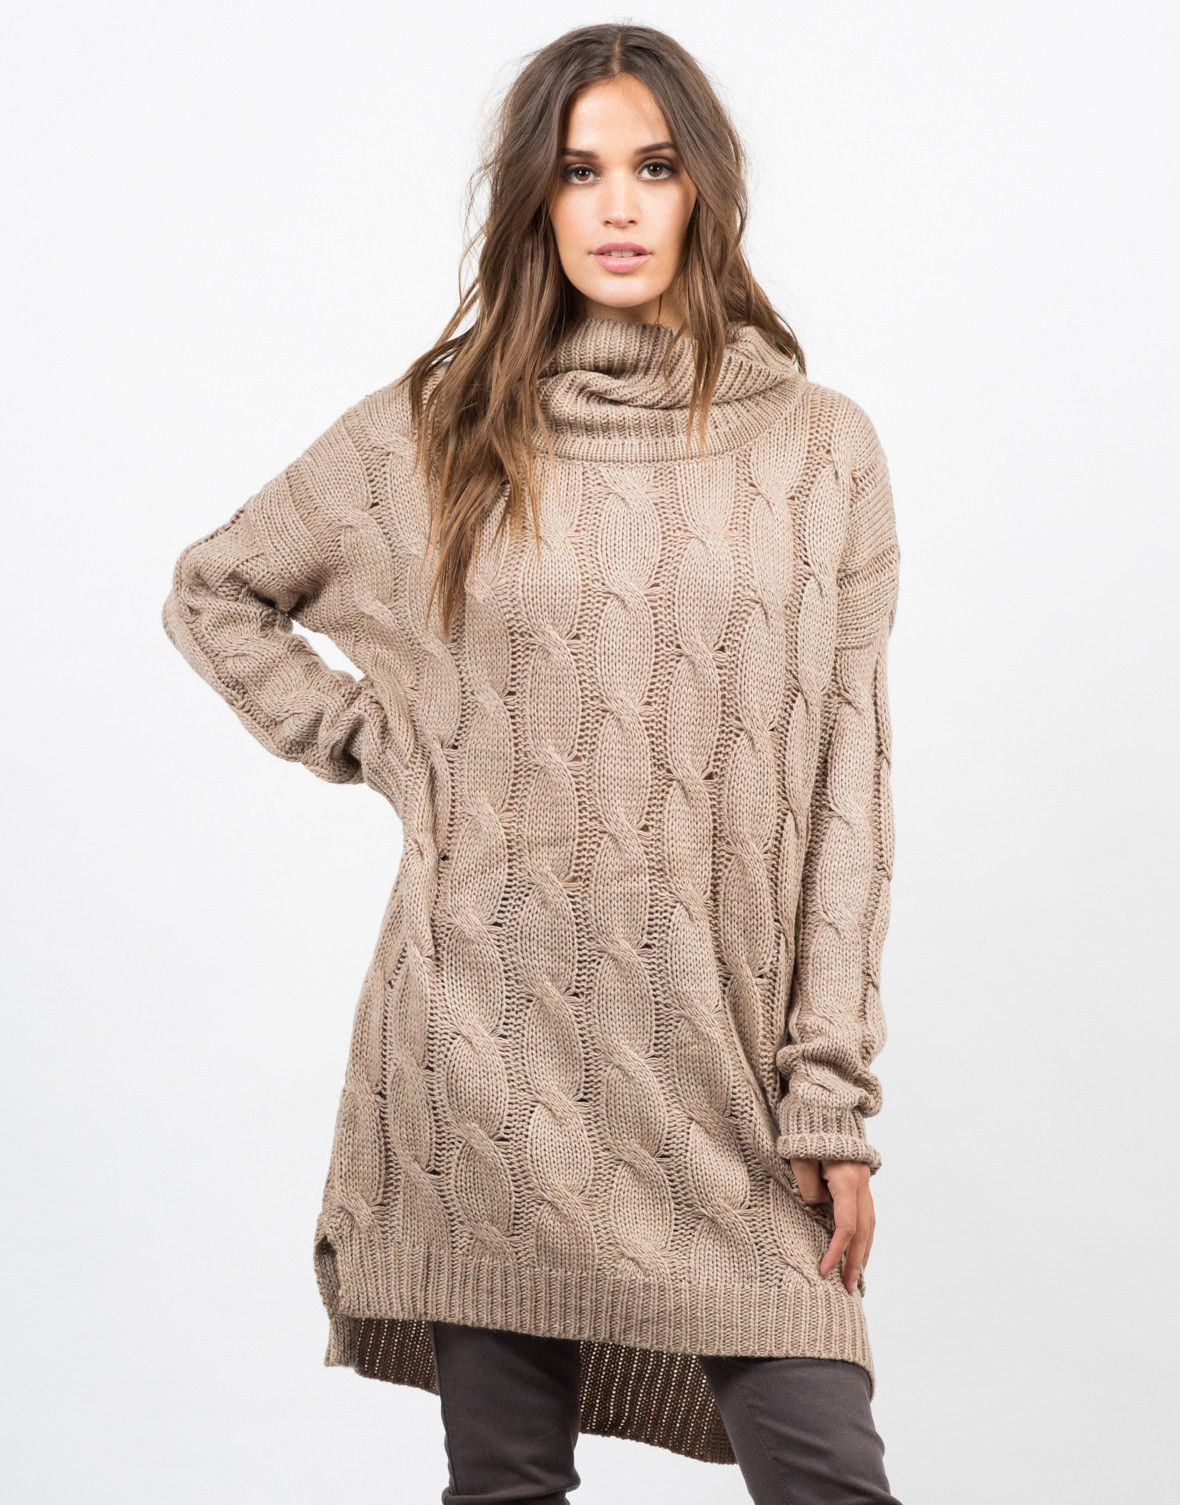 Chunky Turtleneck Sweater Dress | Winter fashion, Clothes and Clothing